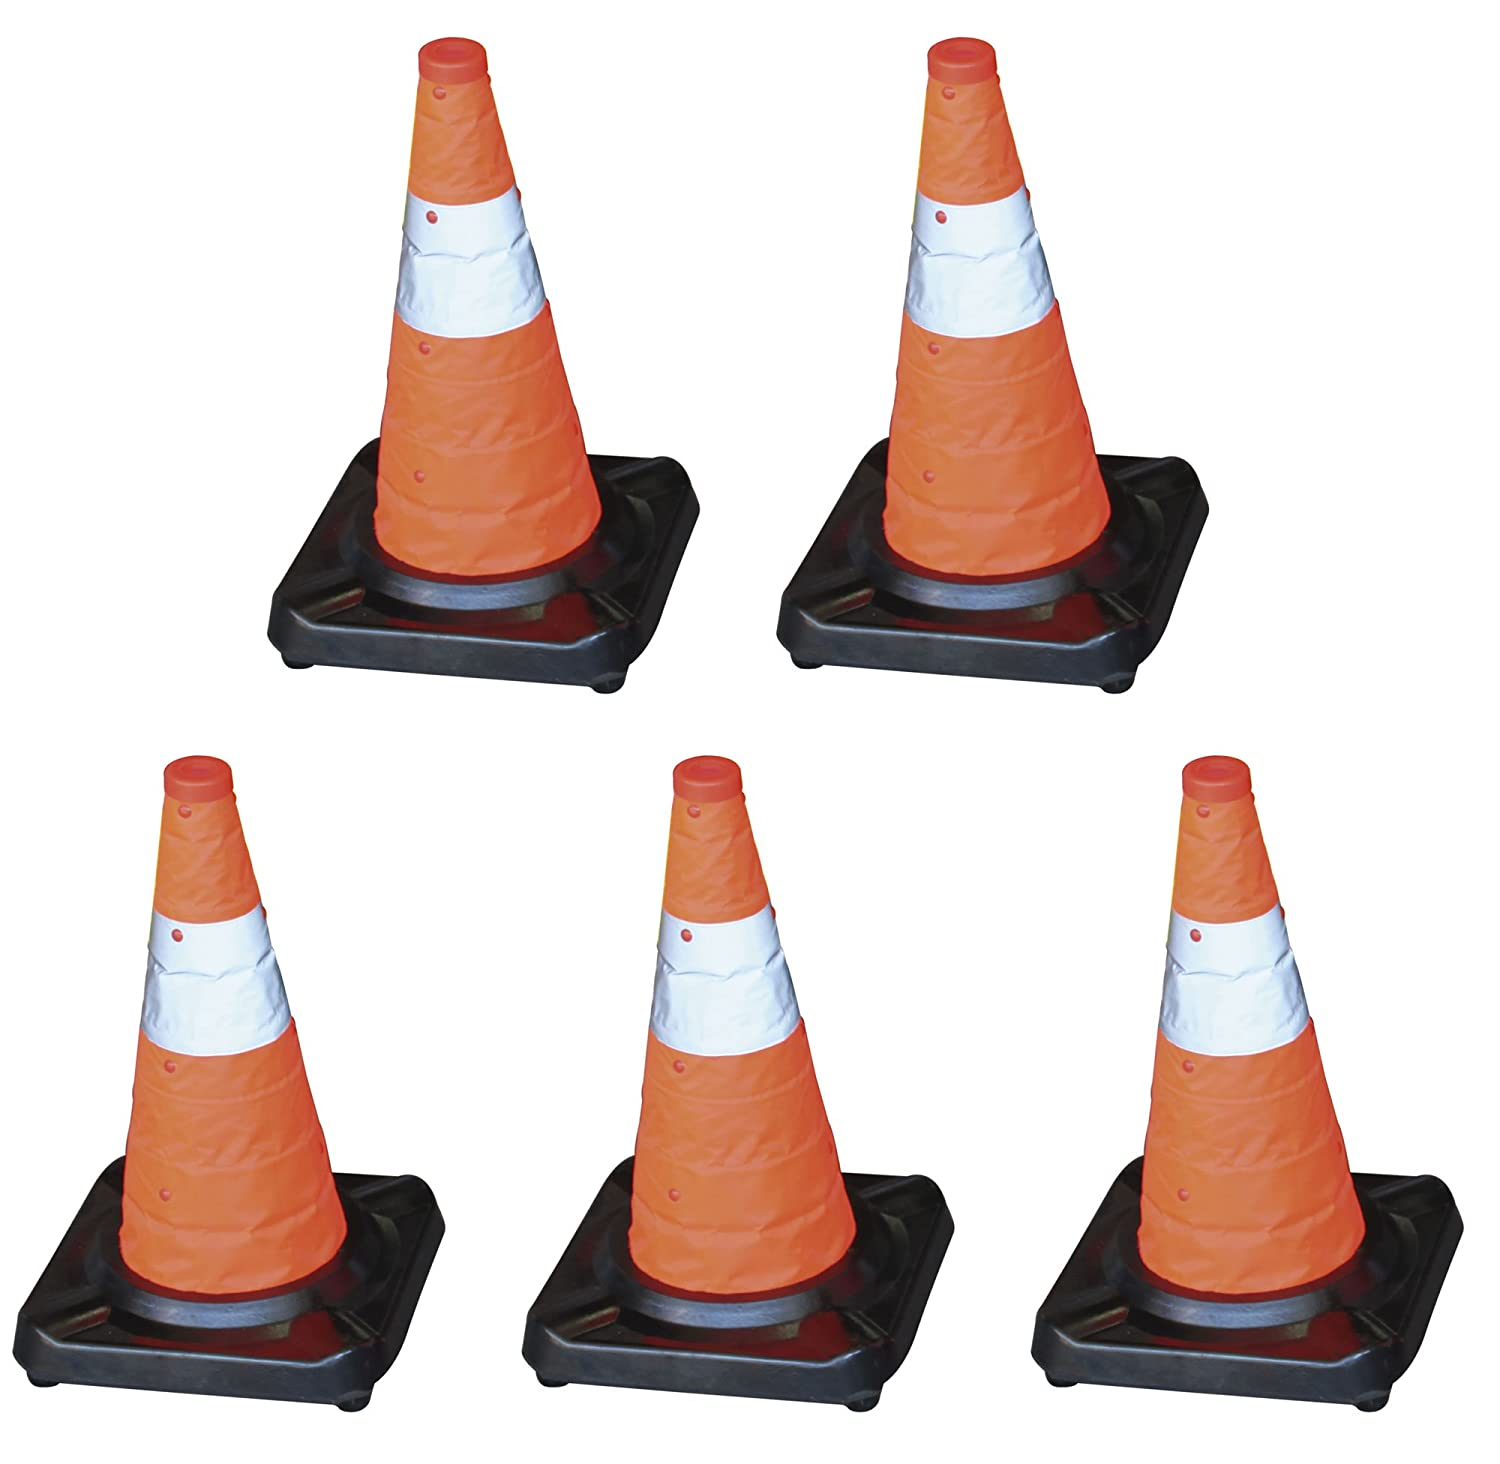 Adosa–Kit of 5Cones Folding Base Rubber + Fabric Reflective 45cm Height